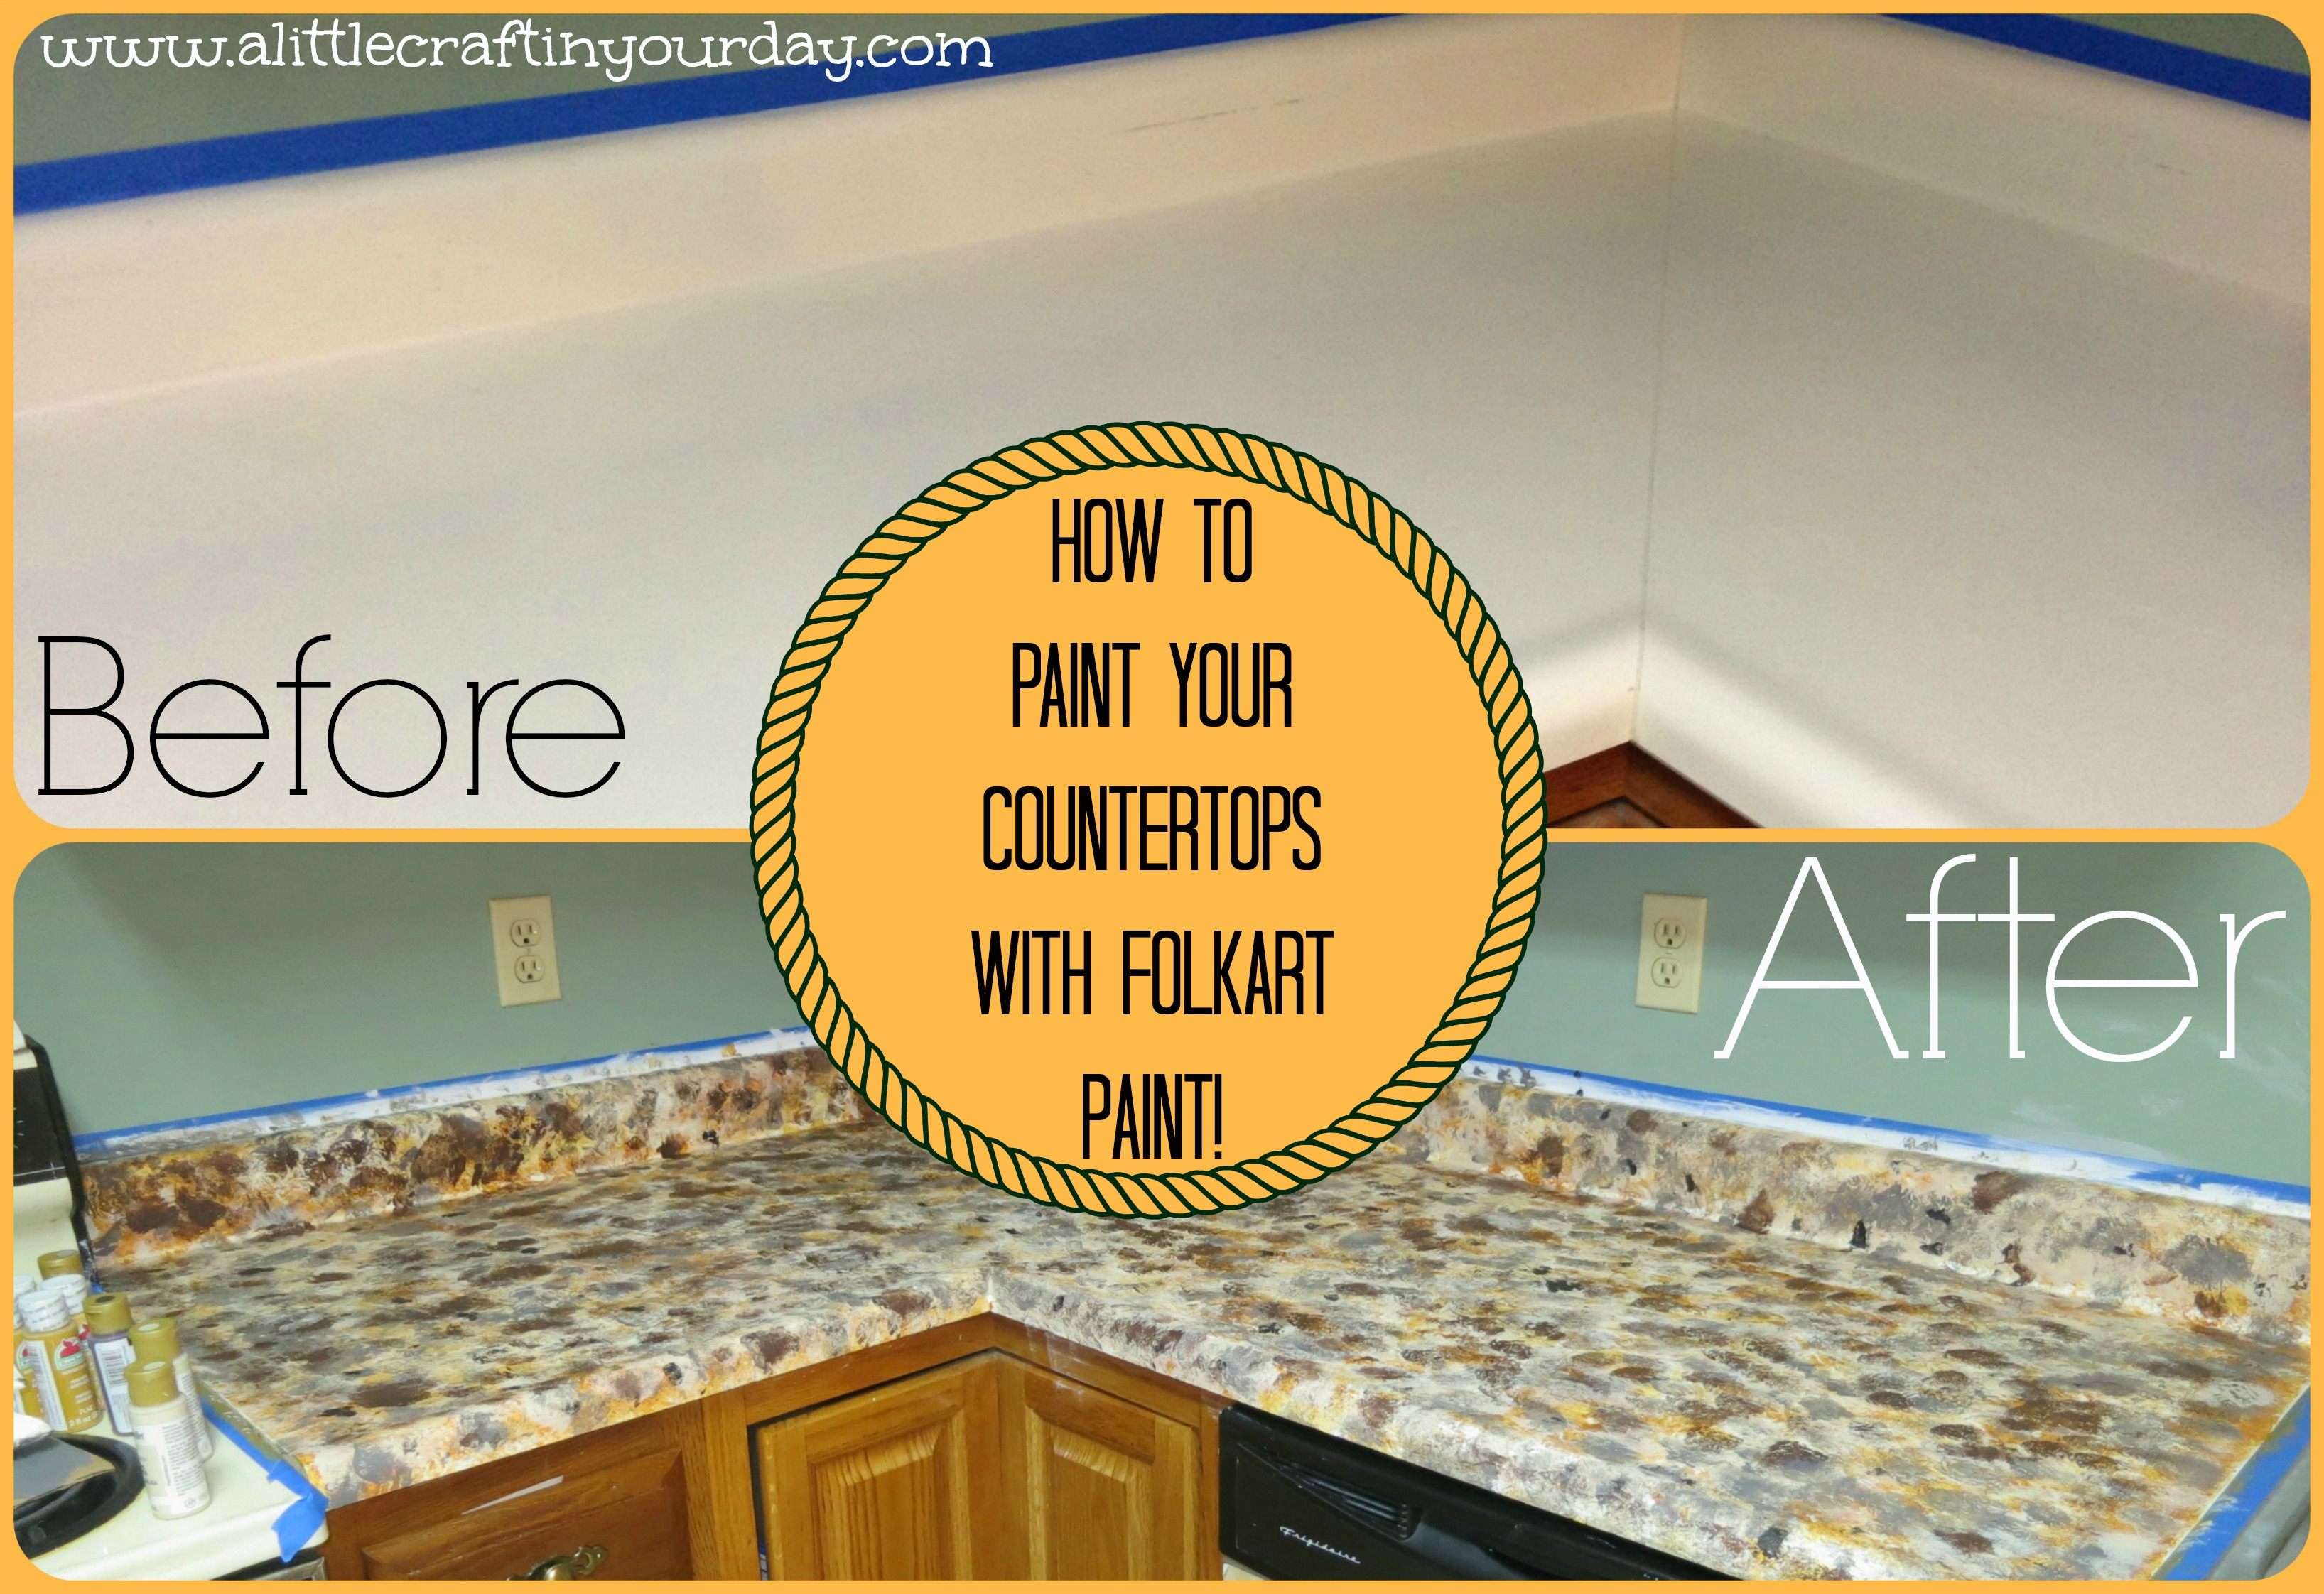 9/30 | How To Paint Your Countertops With Folkart Paint!